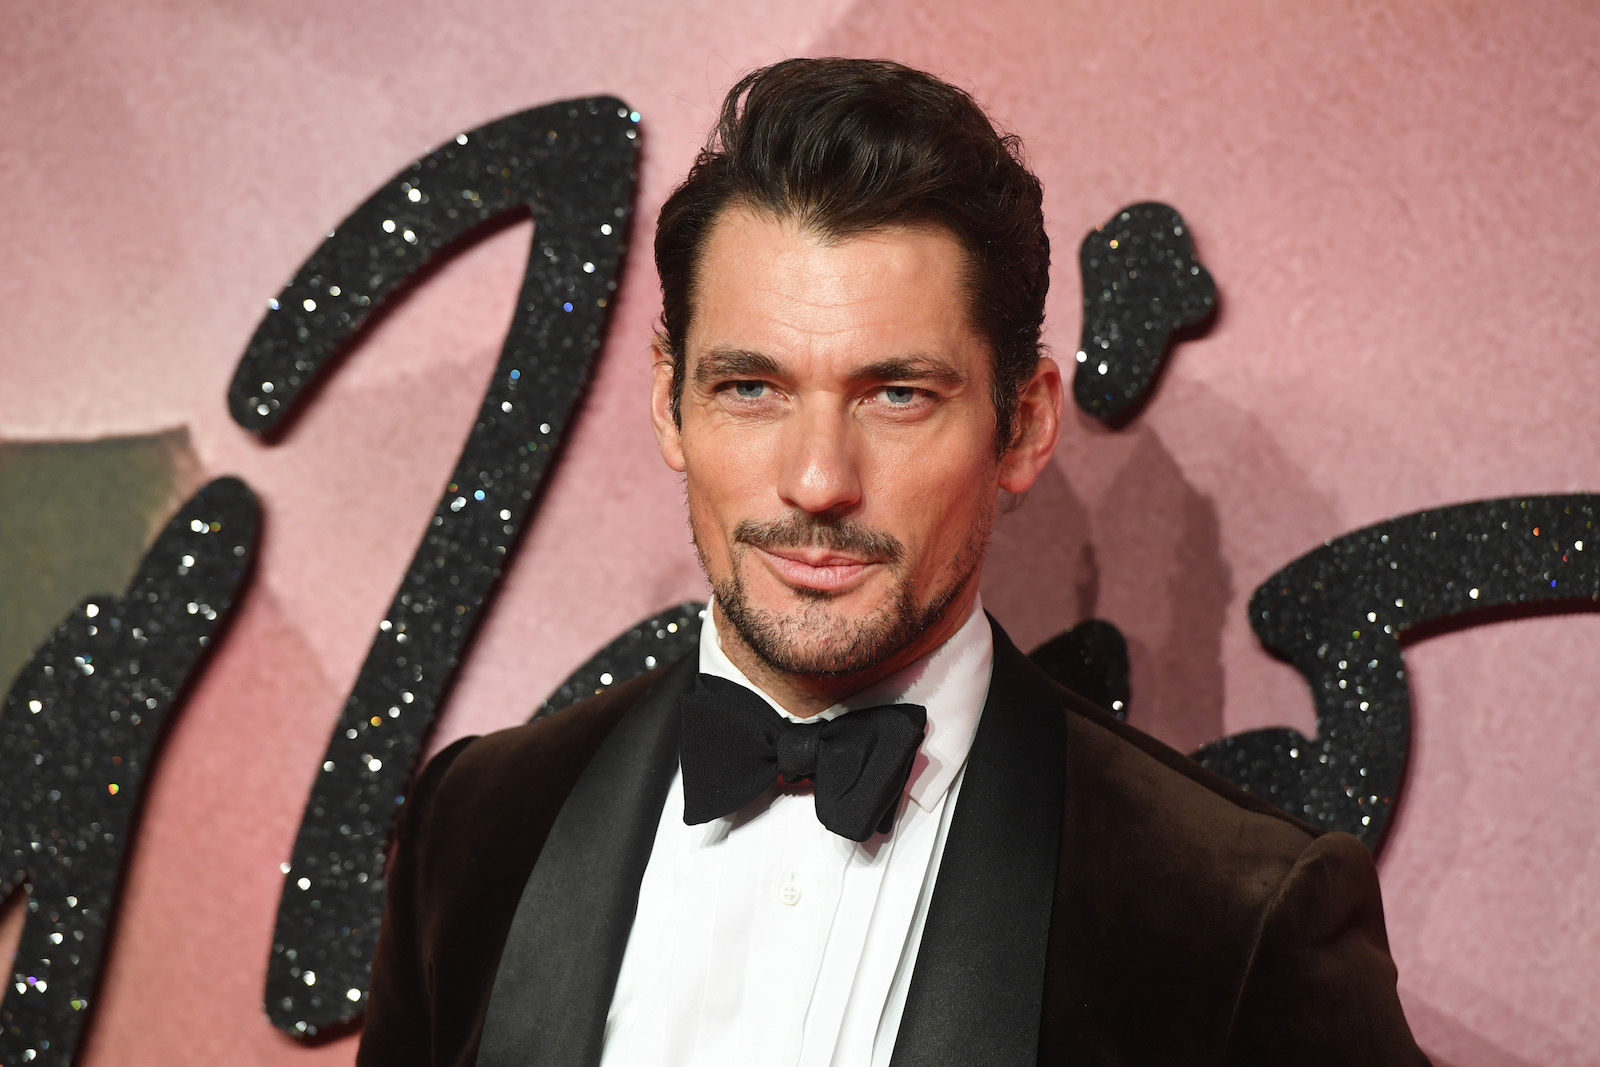 David Gandy is the Perfect Male Specimen!